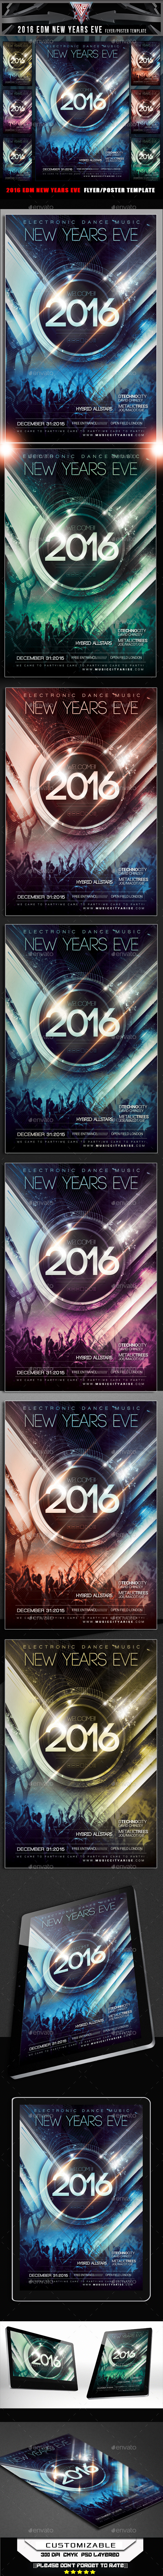 2016 EDM New Years Eve Flyer Template - Clubs & Parties Events